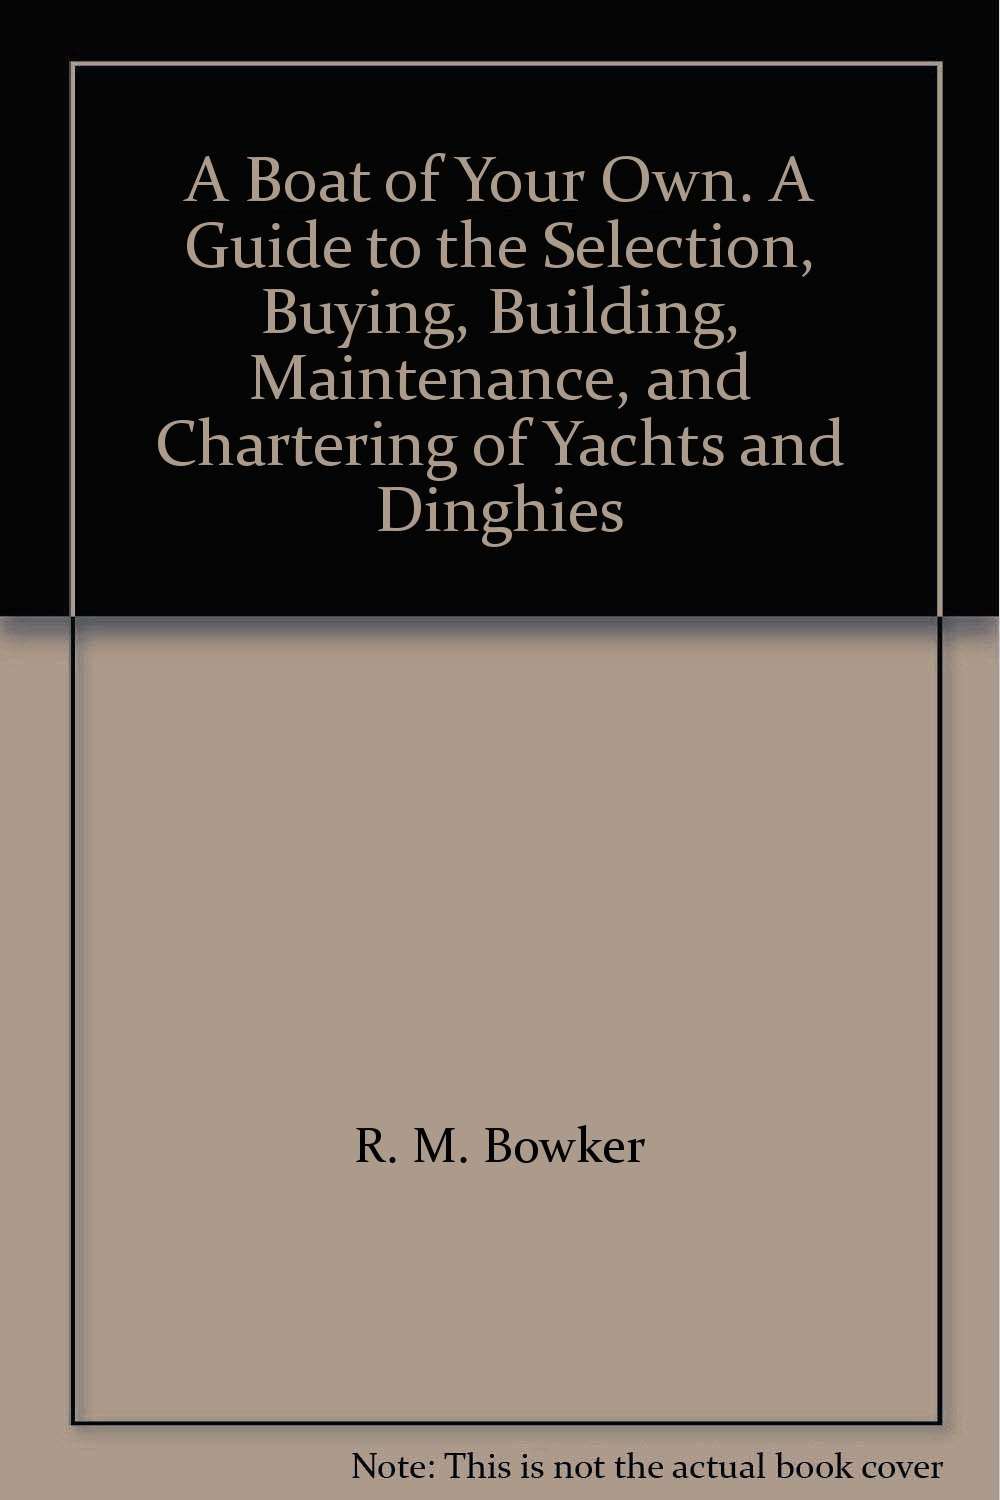 A Boat of Your Own. A Guide to the Selection, Buying, Building, Maintenance, and Chartering of Yachts and Dinghies